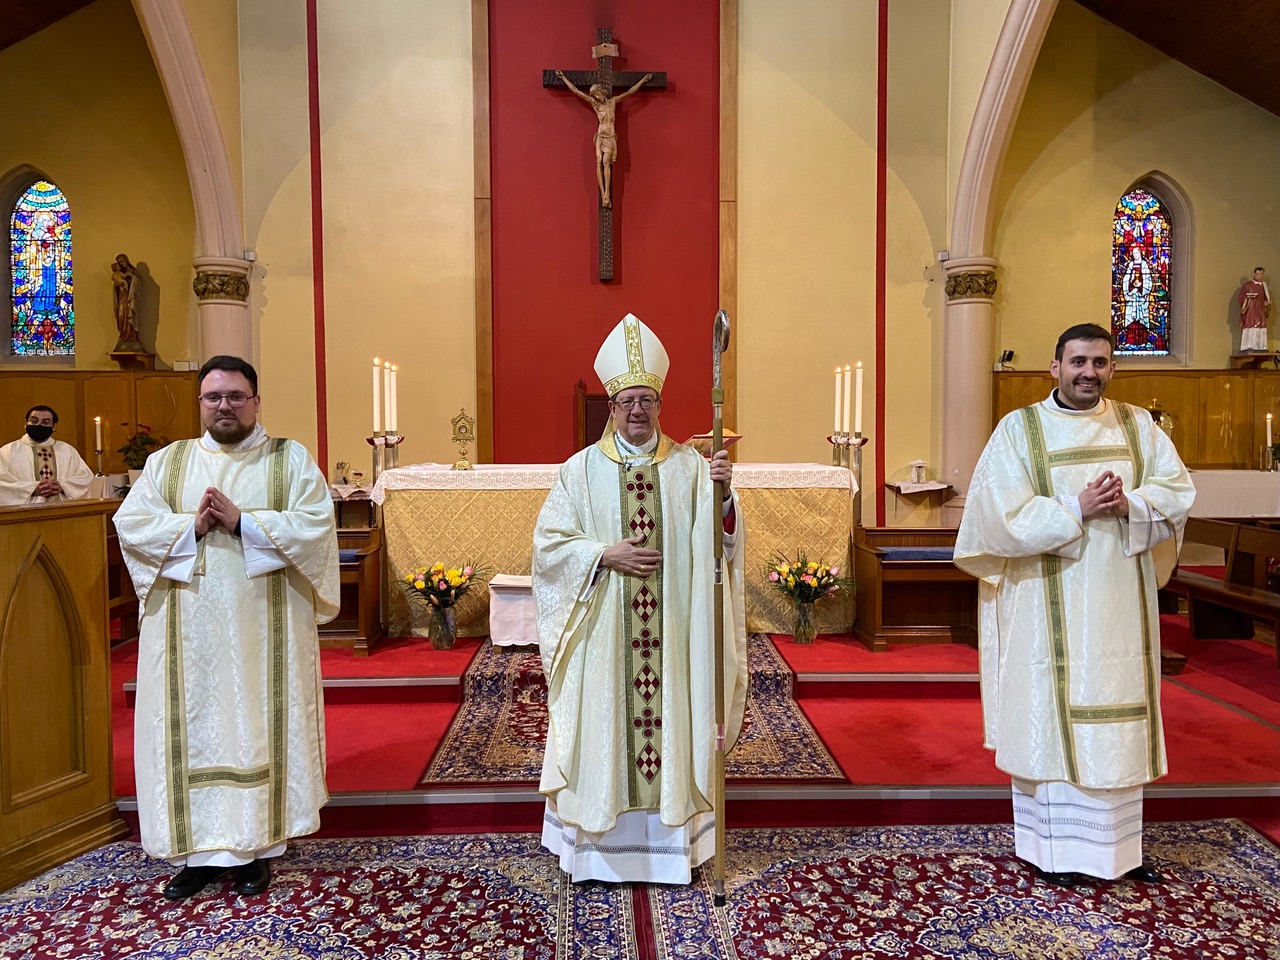 (from left to right) Deacon Jakub Joszko, Bishop John Sherrington, Deacon Marco Salvagnini